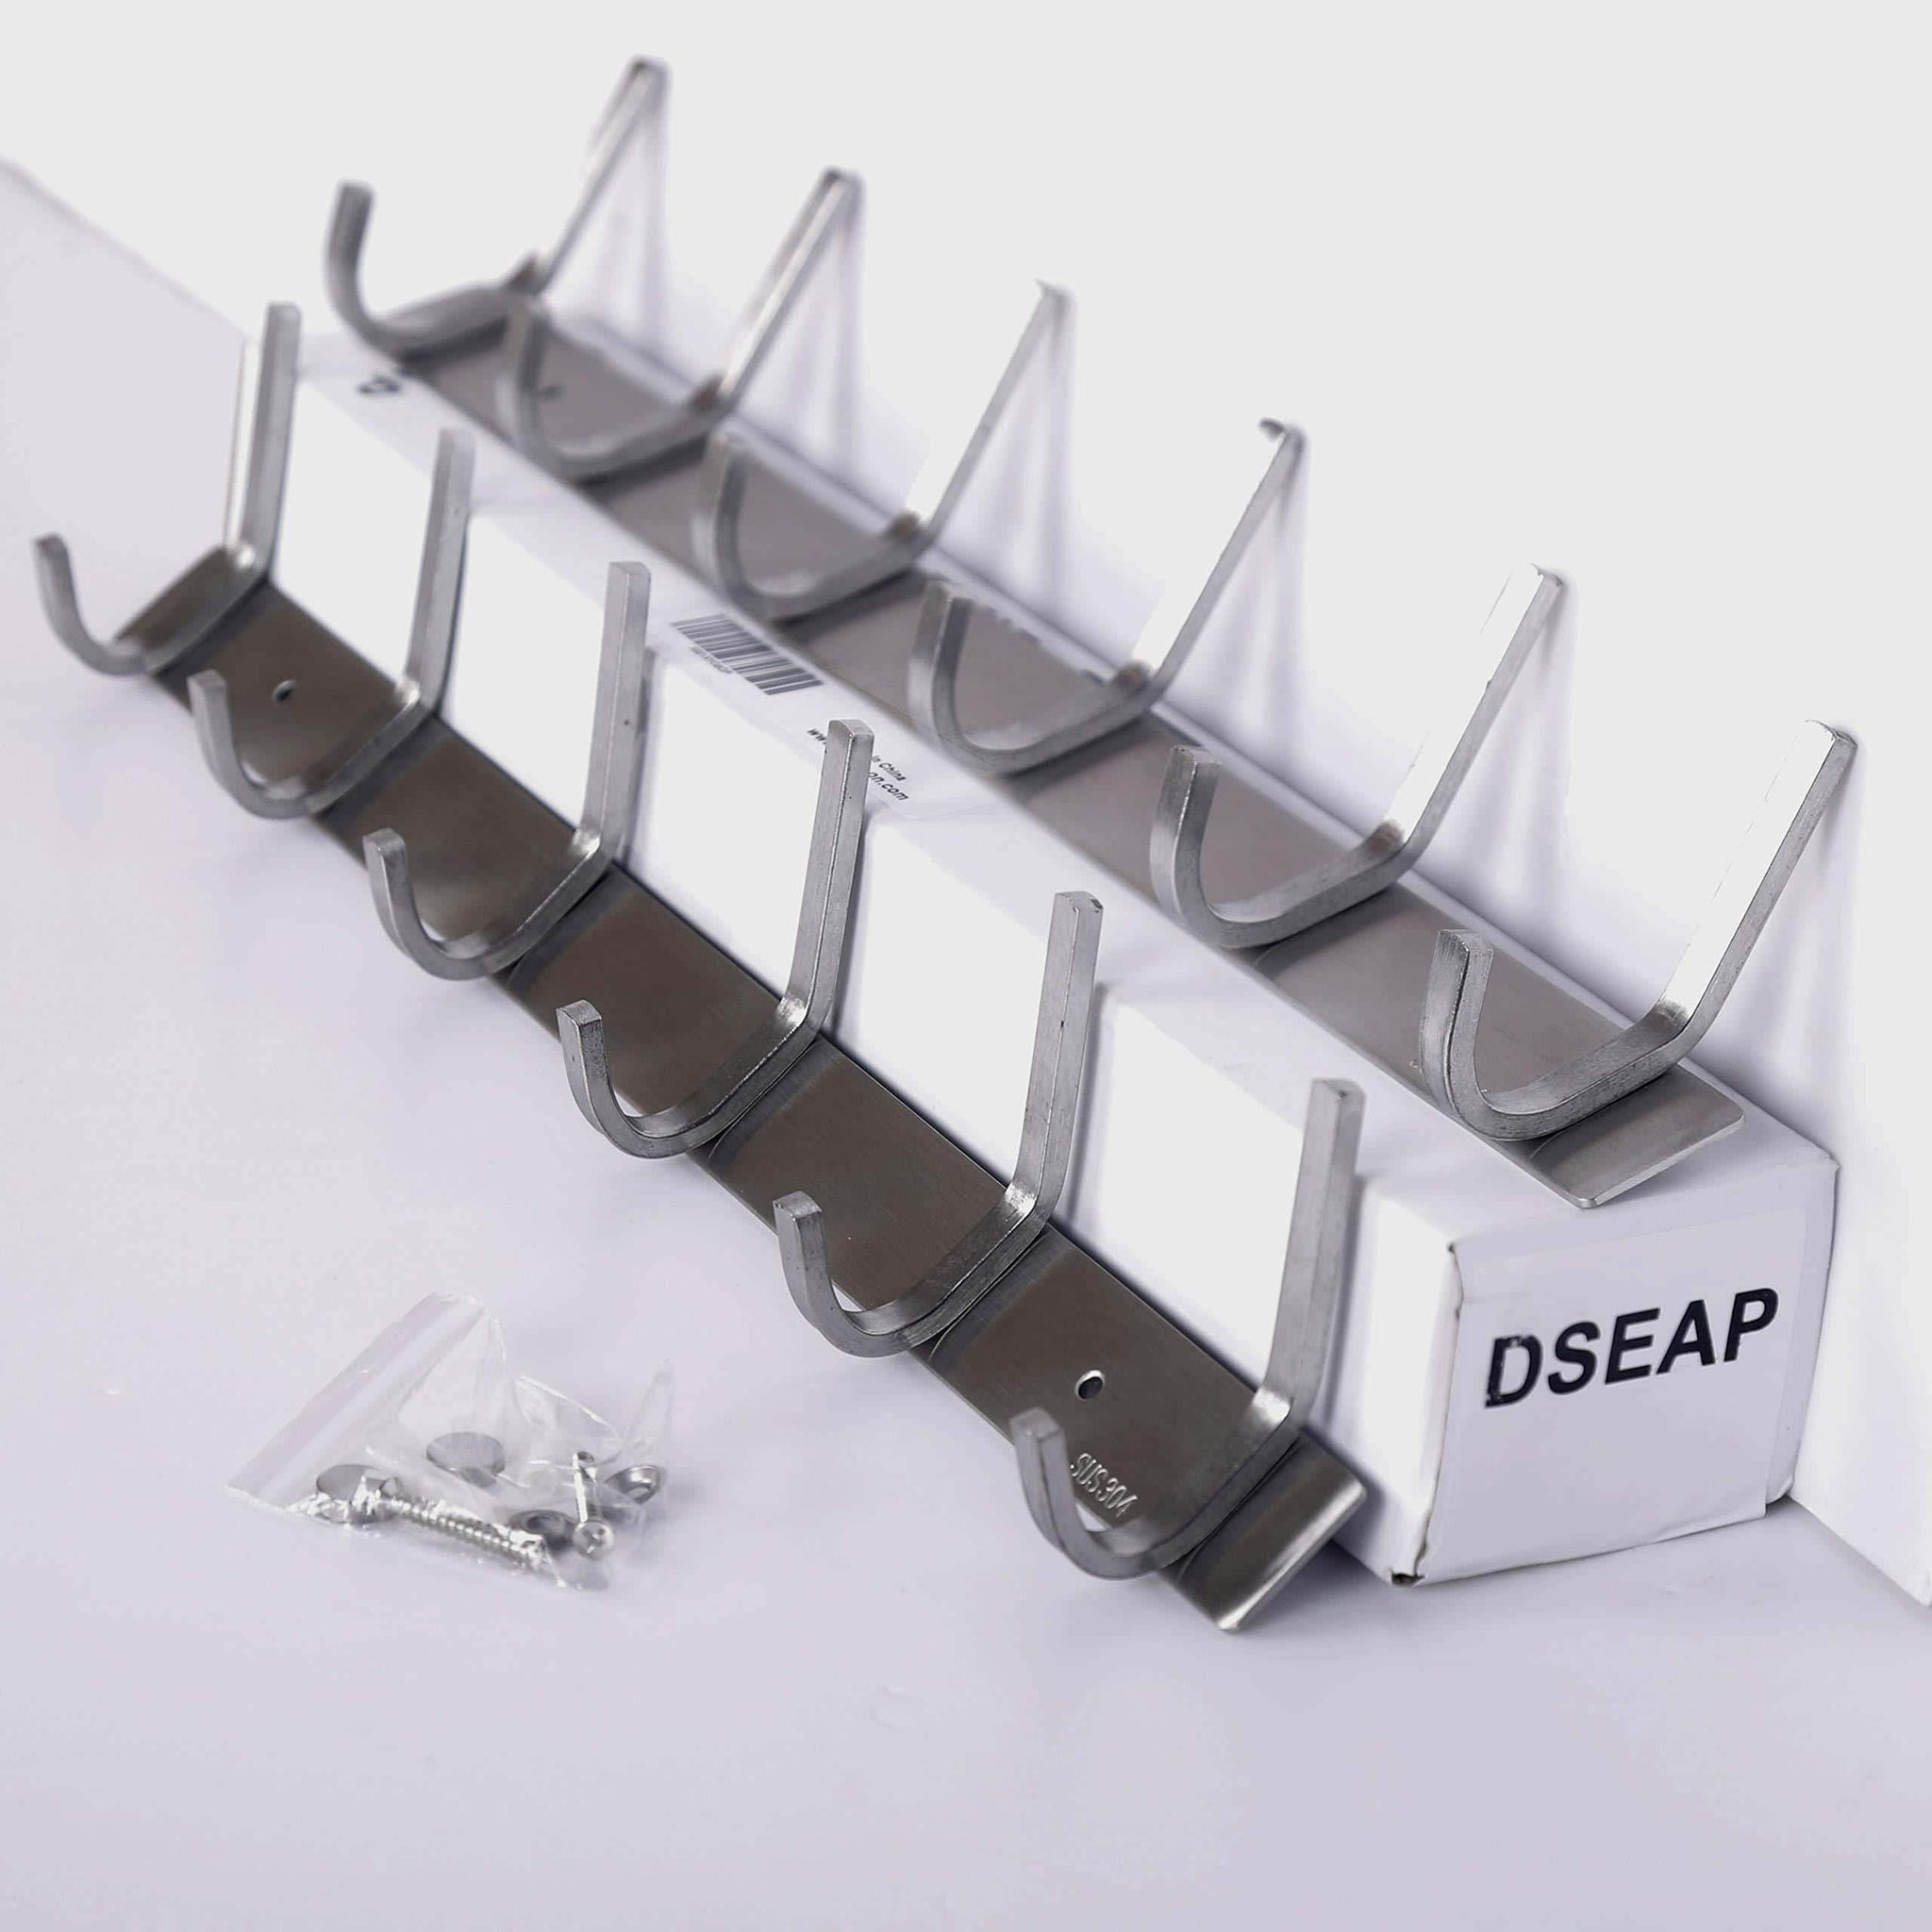 Dseap Wall Mounted Coat Rack: 6-Hooks, Stainless Steel 304, Metal Hook Rail, Hook Rack, Coat Hooks, Bath Towel Hooks, 2 Packs